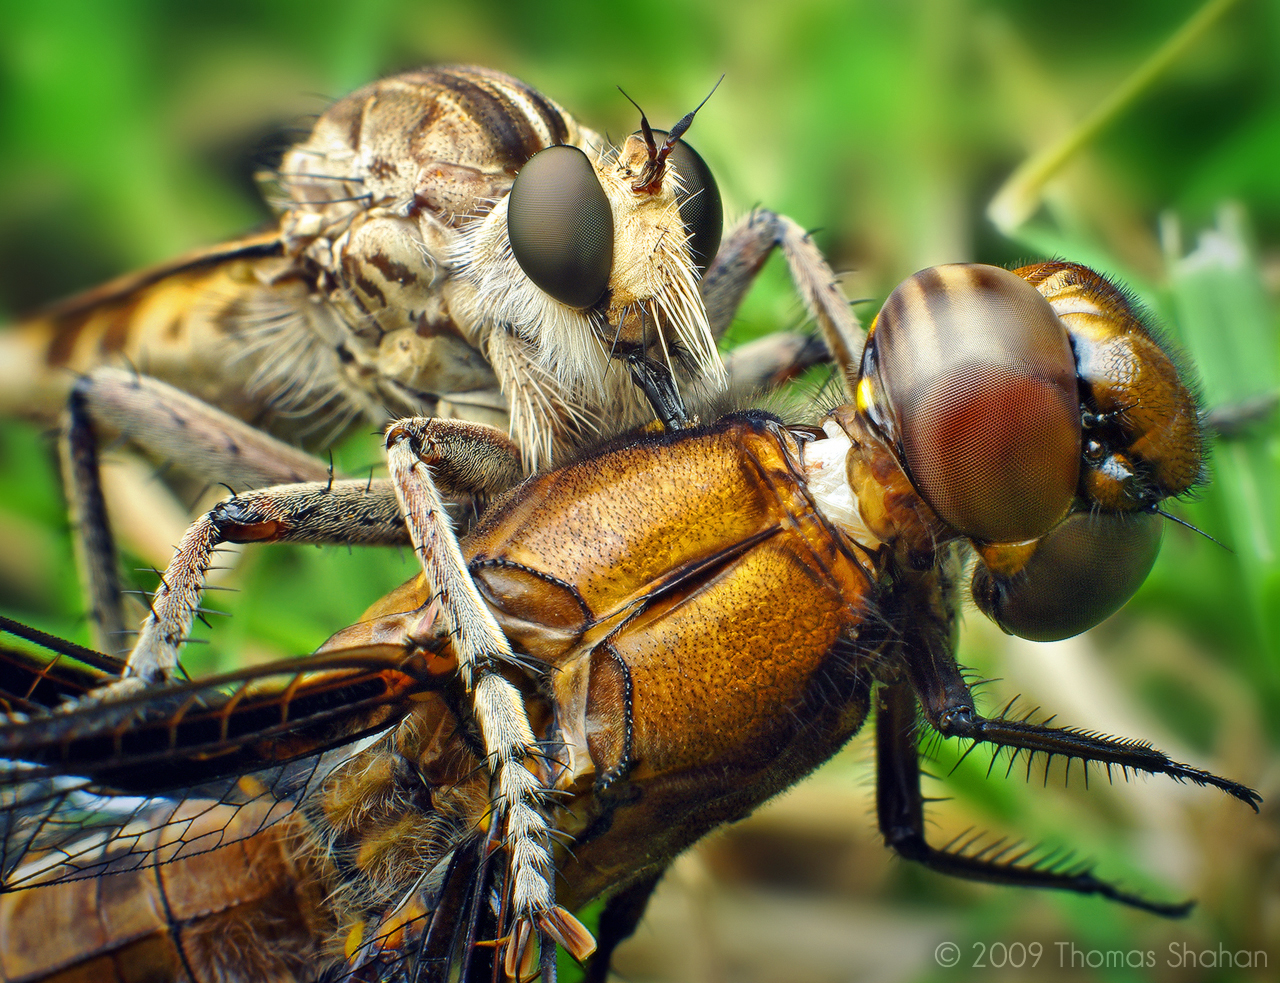 Bug close-up: Robber Fly with Dragonfly